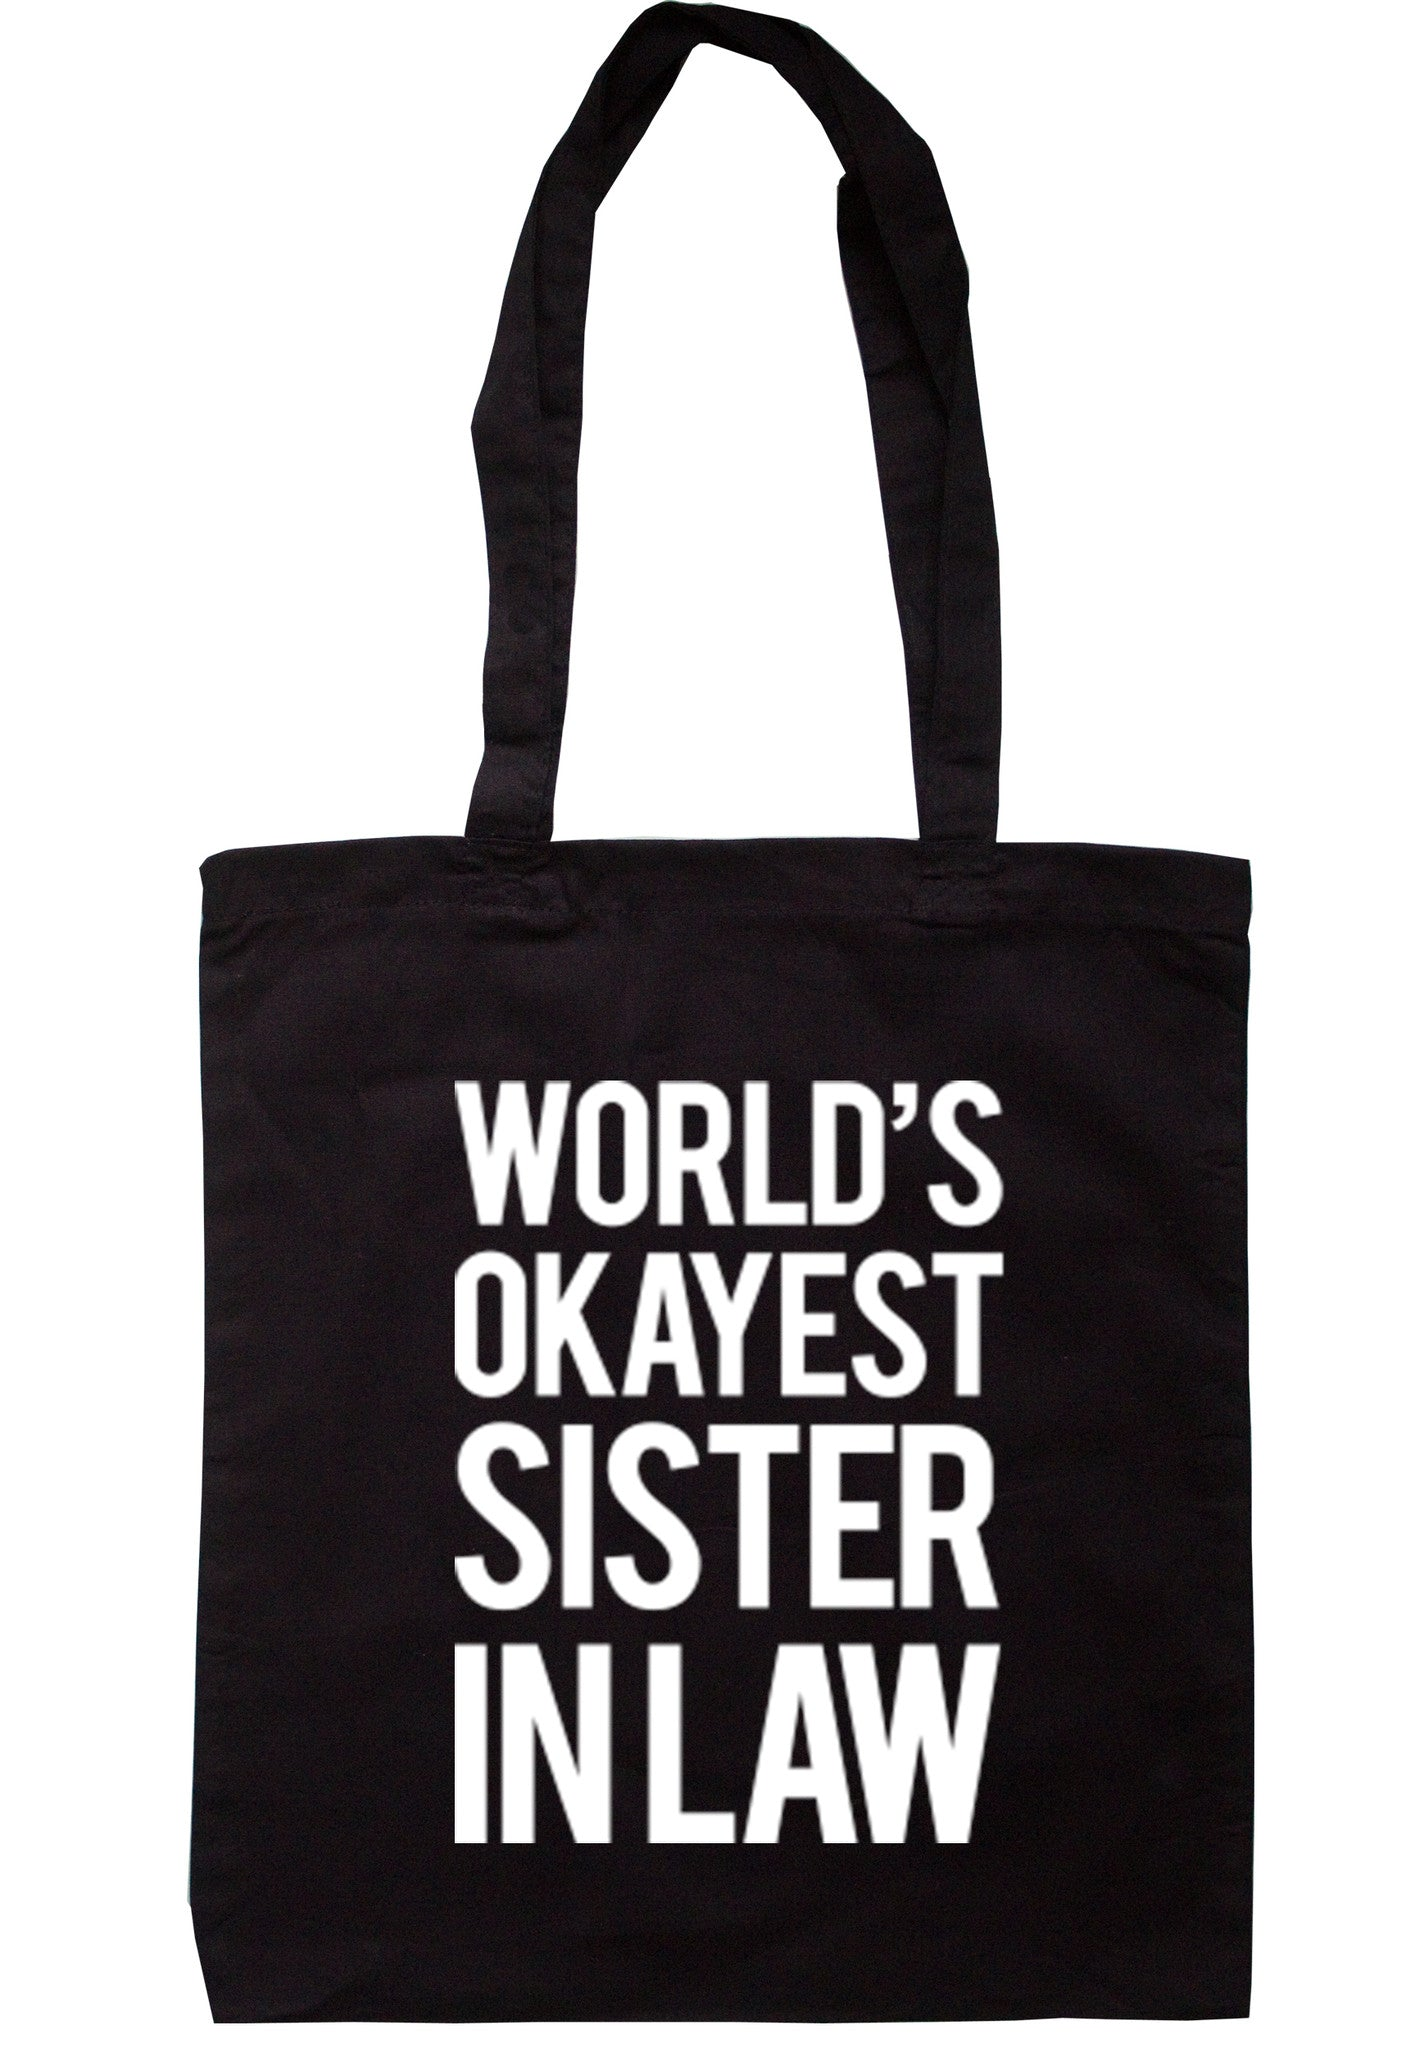 Worlds Okayest Sister In Law Tote Bag TB0032 - Illustrated Identity Ltd.